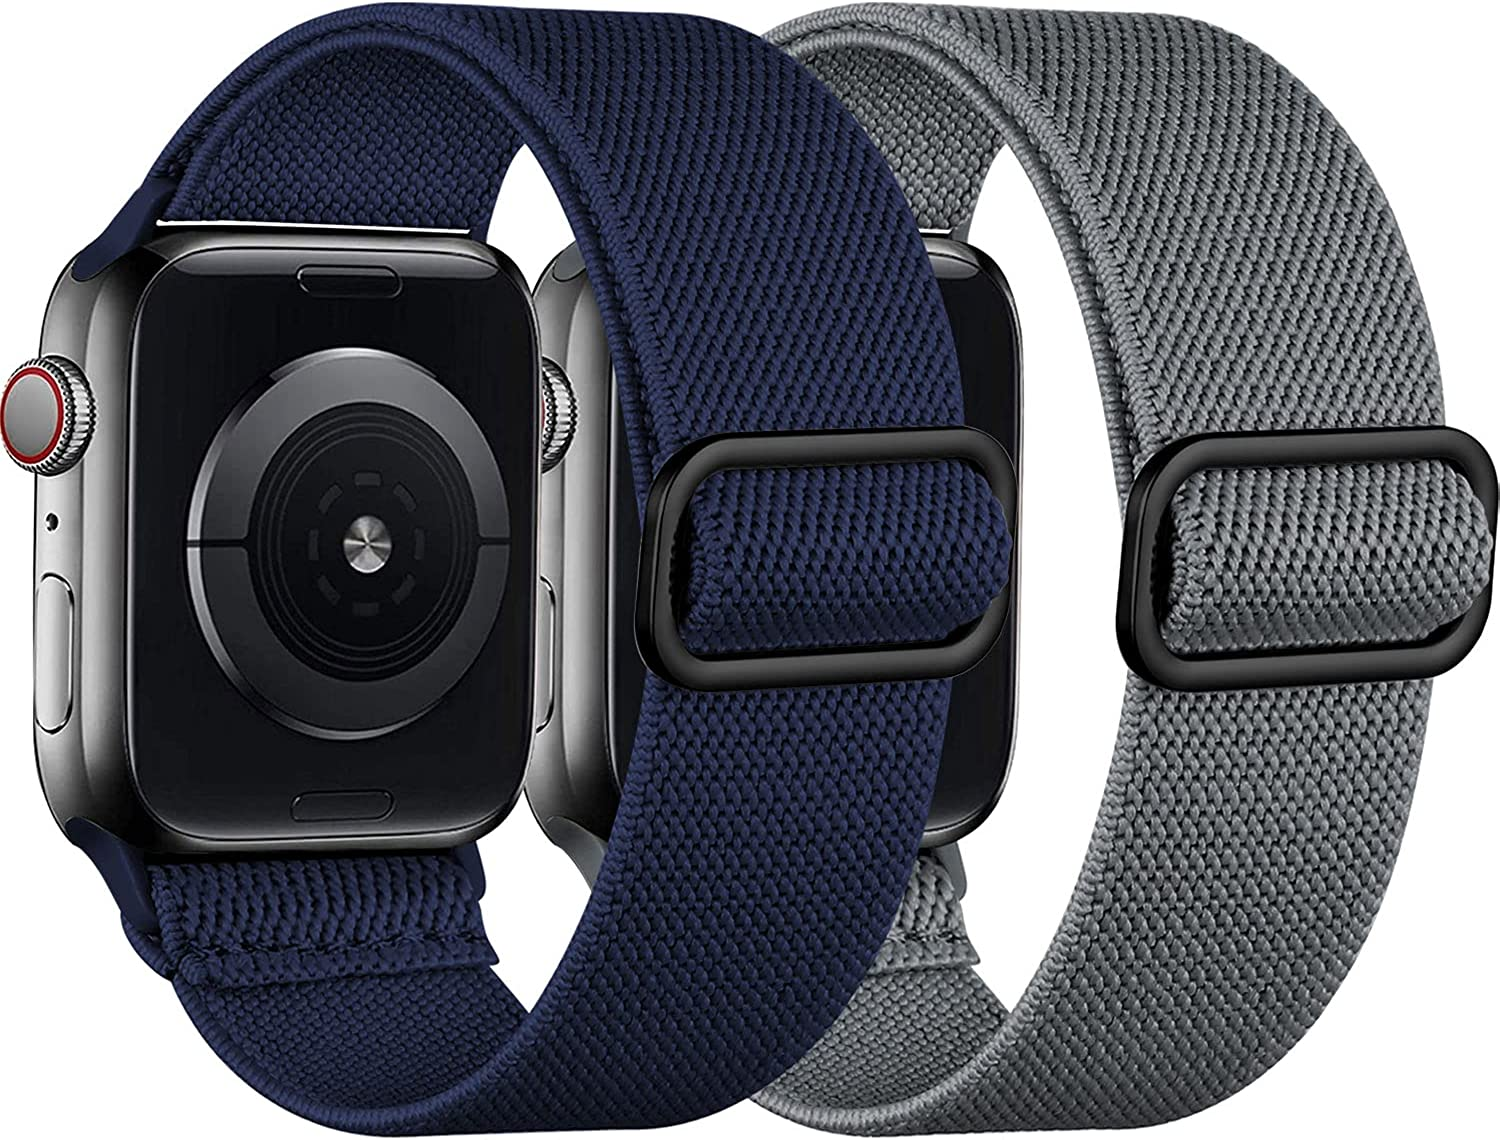 [2 Pack] SNBLK Compatible with Apple Watch Bands 44mm 42mm 40mm 38mm, Adjustable Stretchy Elastic Solo Loop Sport Nylon Strap Compatible for iWatch Series 6 5 4 3 2 1 SE